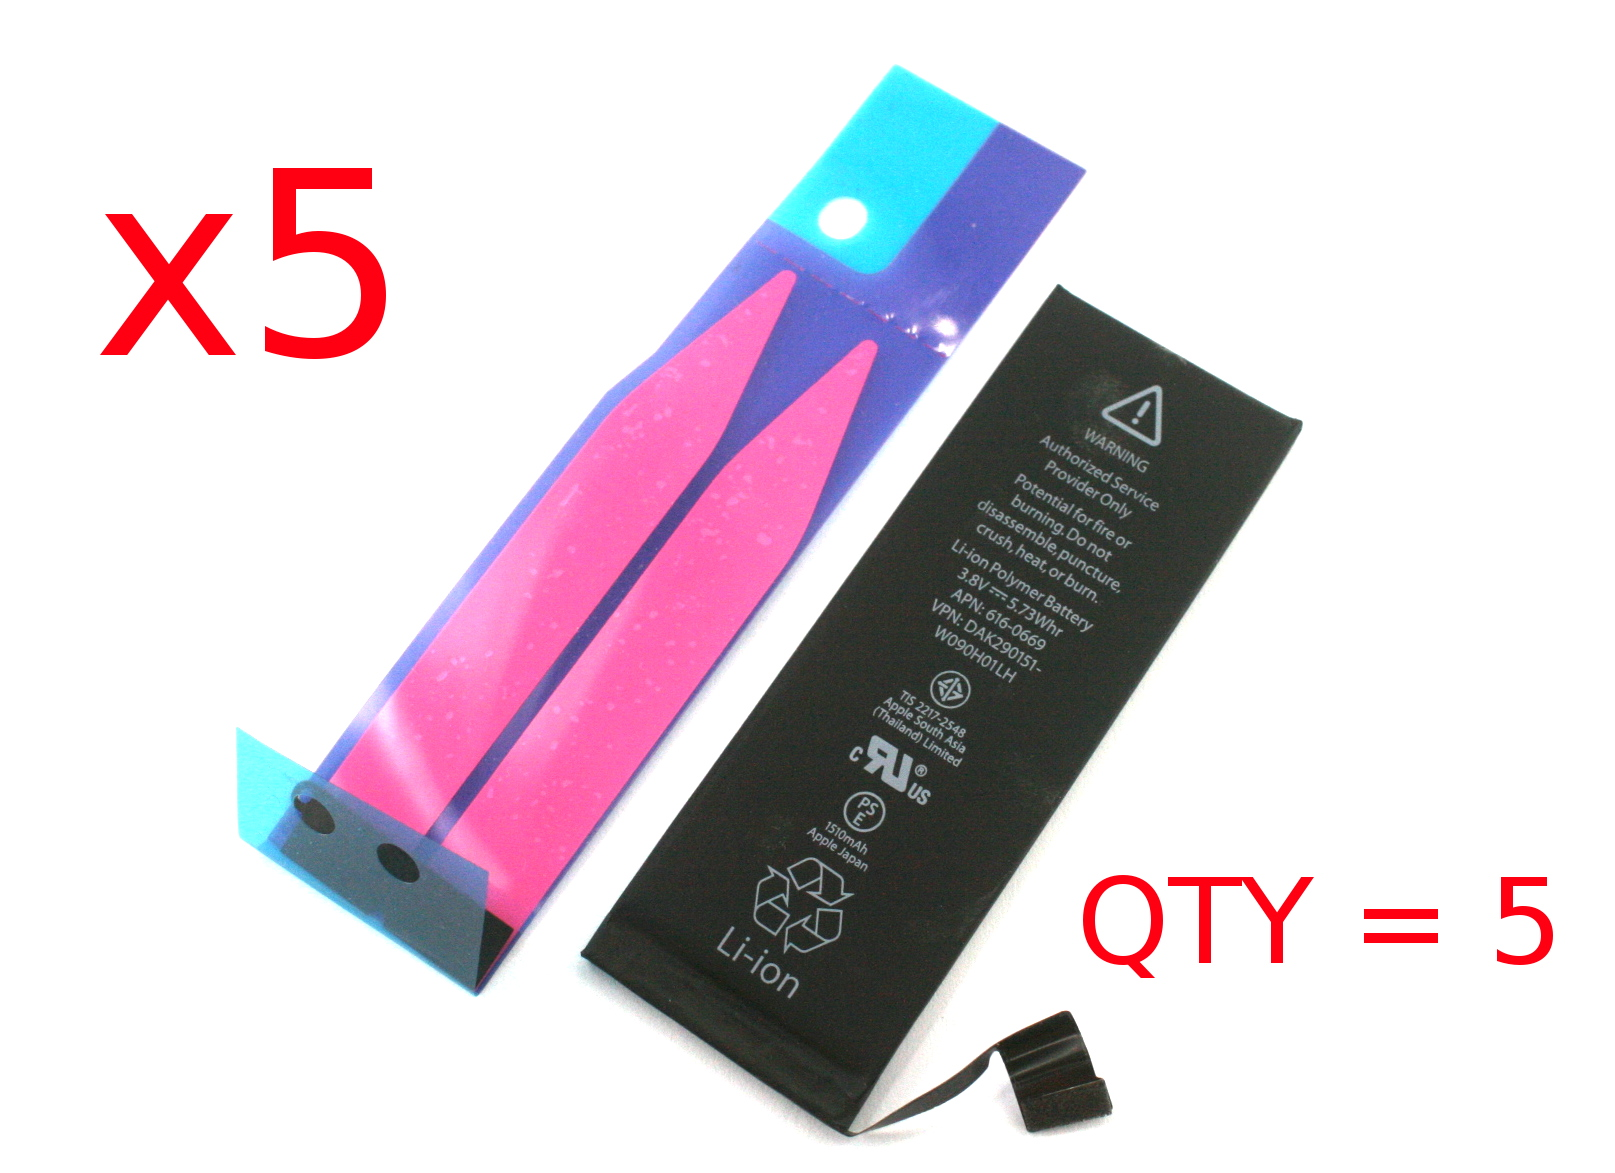 x5 616-0669 Genuine Apple iPhone 5C Battery Kit /w Adhesive 661-8300 652-1163